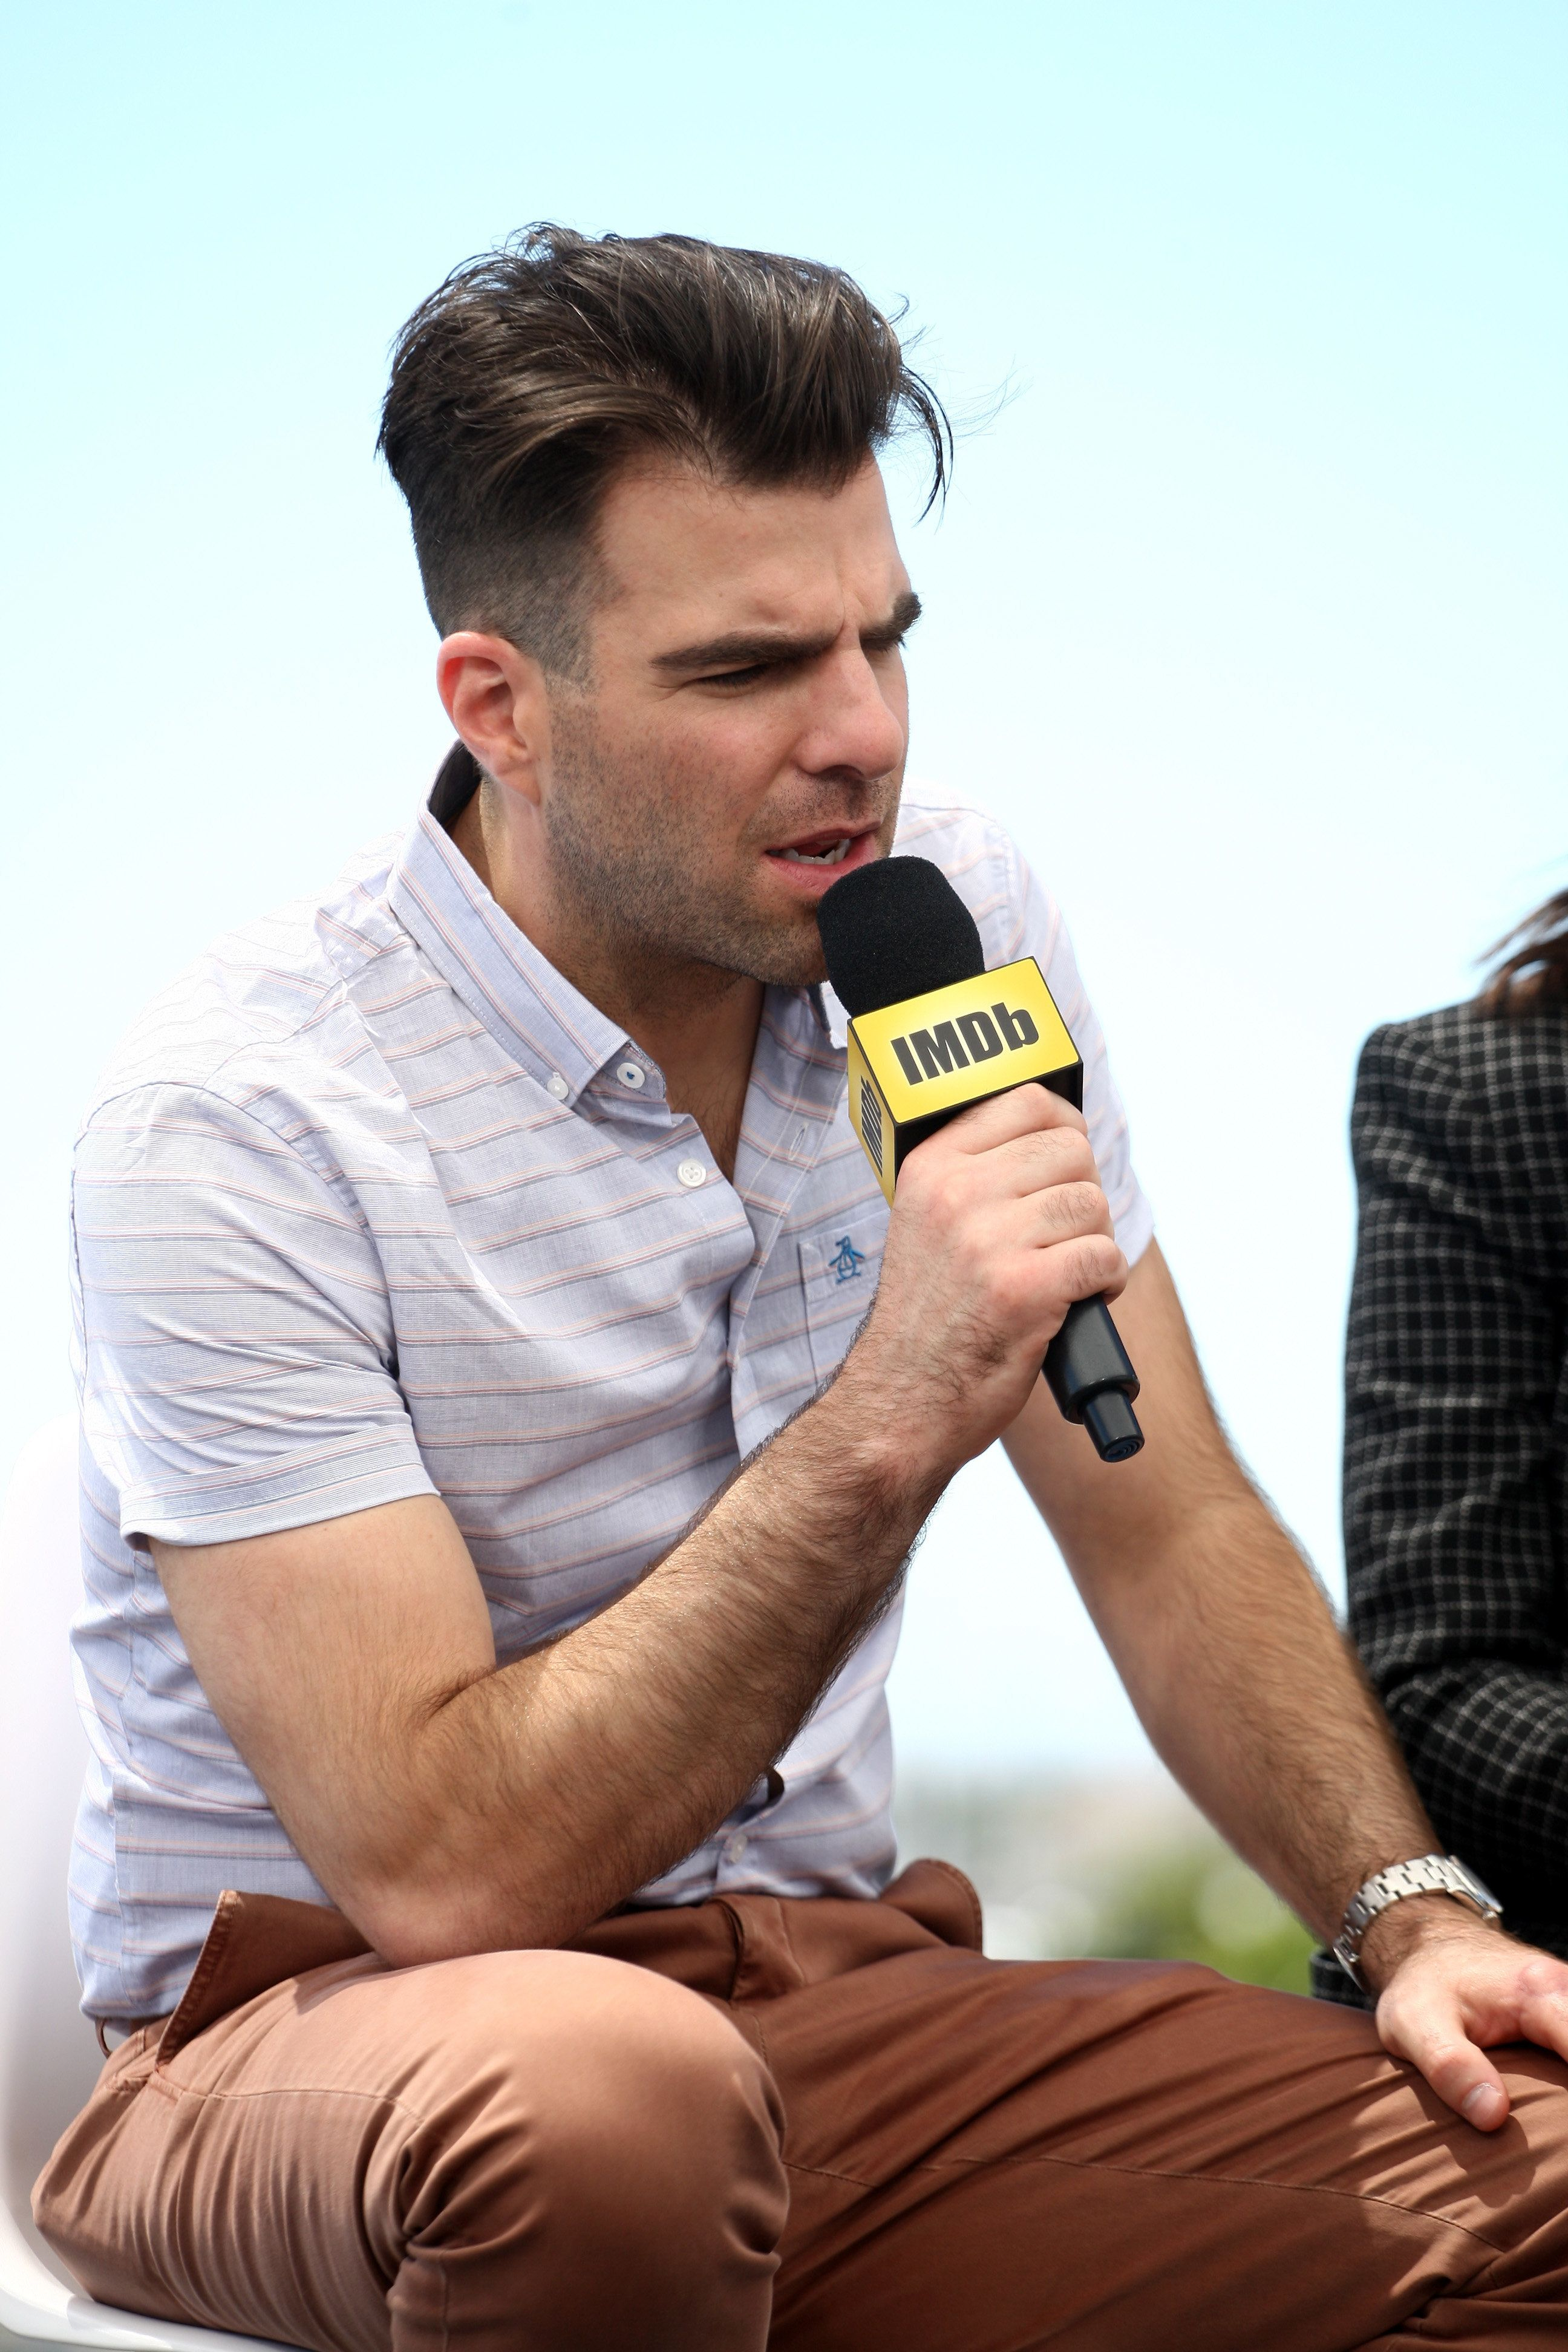 SAN DIEGO, CA - JULY 21:  Actor Zachary Quinto attends the IMDb Yacht at San Diego Comic-Con 2016: Day One at The IMDb Yacht on July 21, 2016 in San Diego, California.  (Photo by Tommaso Boddi/Getty Images for IMDb)